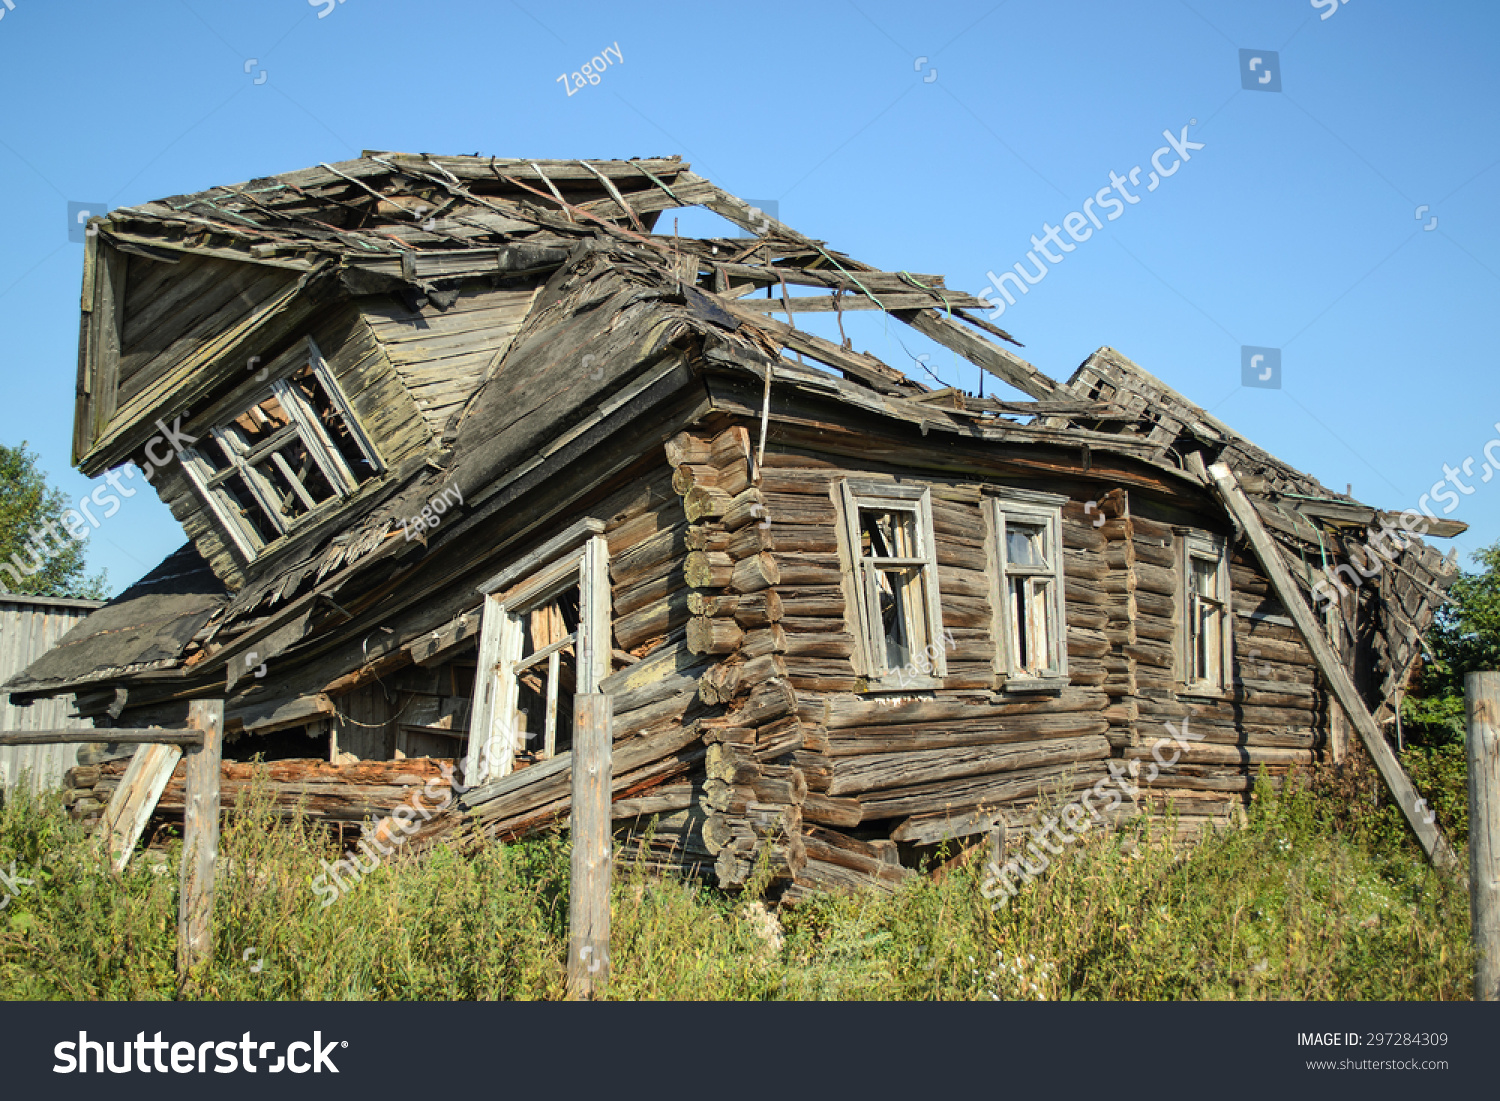 Old Abandoned Broken House Russian Village Stock Photo (Edit Now) 297284309